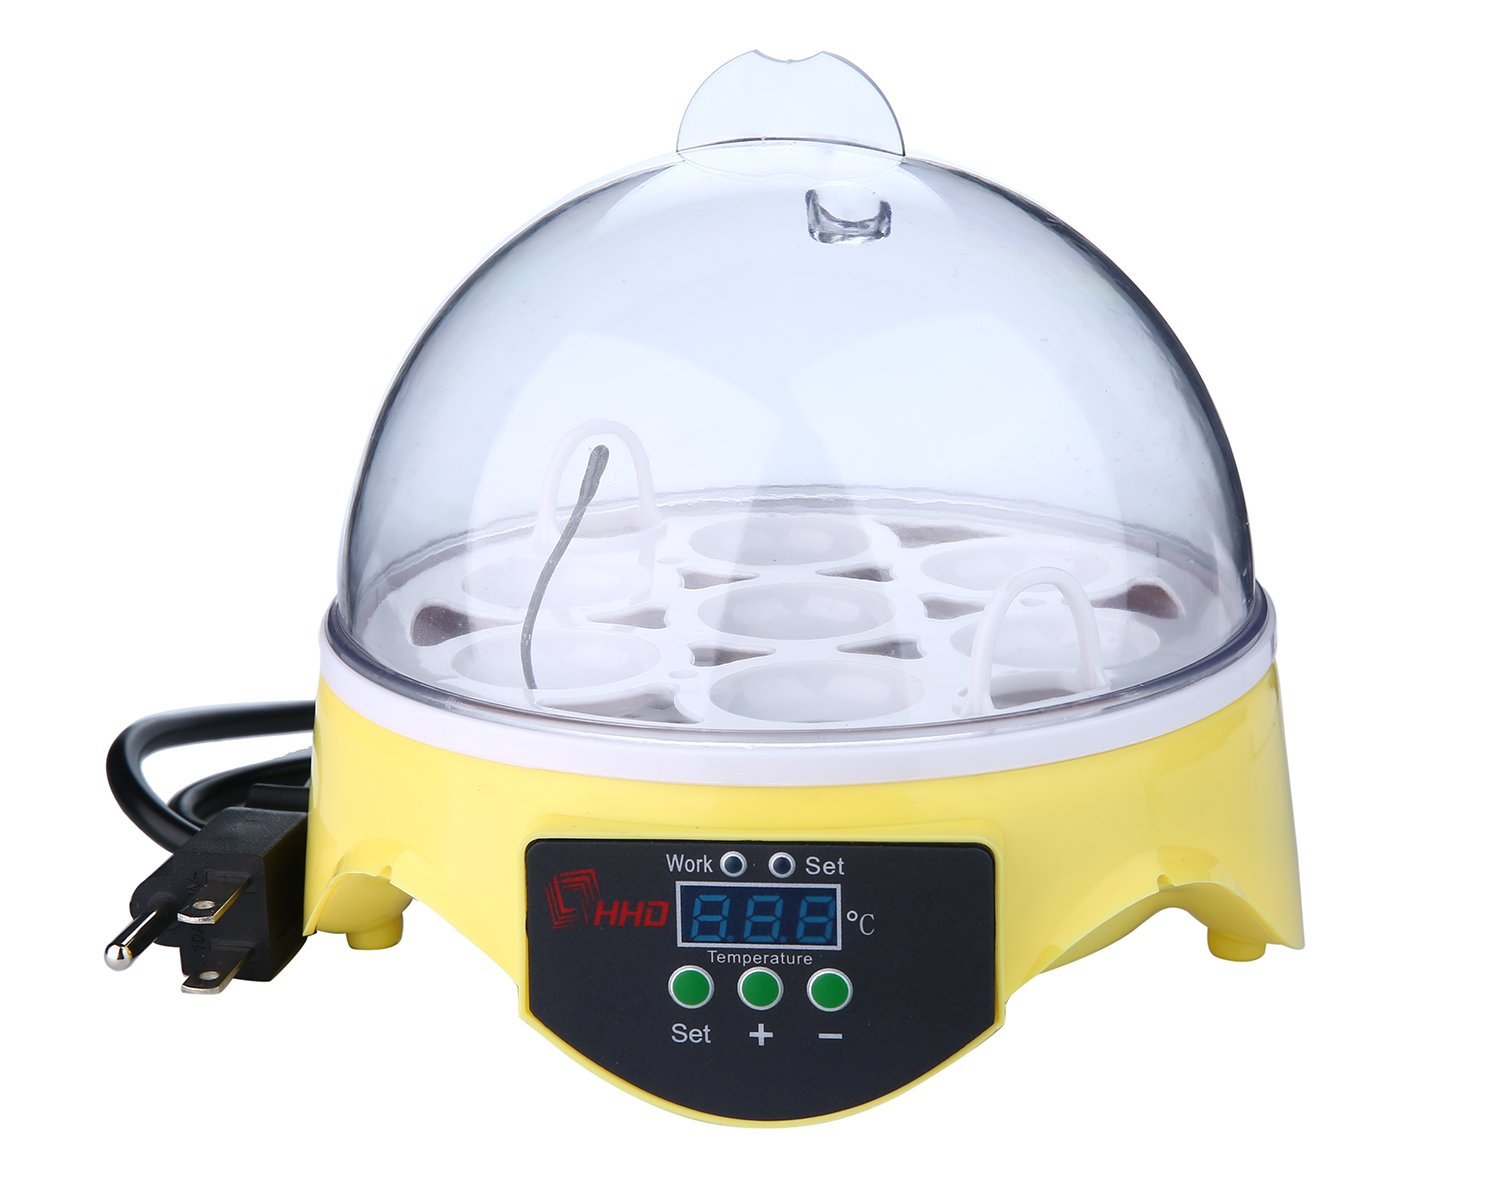 OOOUSE Egg Incubator, Digital Mini Fully Automatic Incubator Poultry Hatcher Temperature Control Hatching Machine for Chickens Birds-7 Pieces